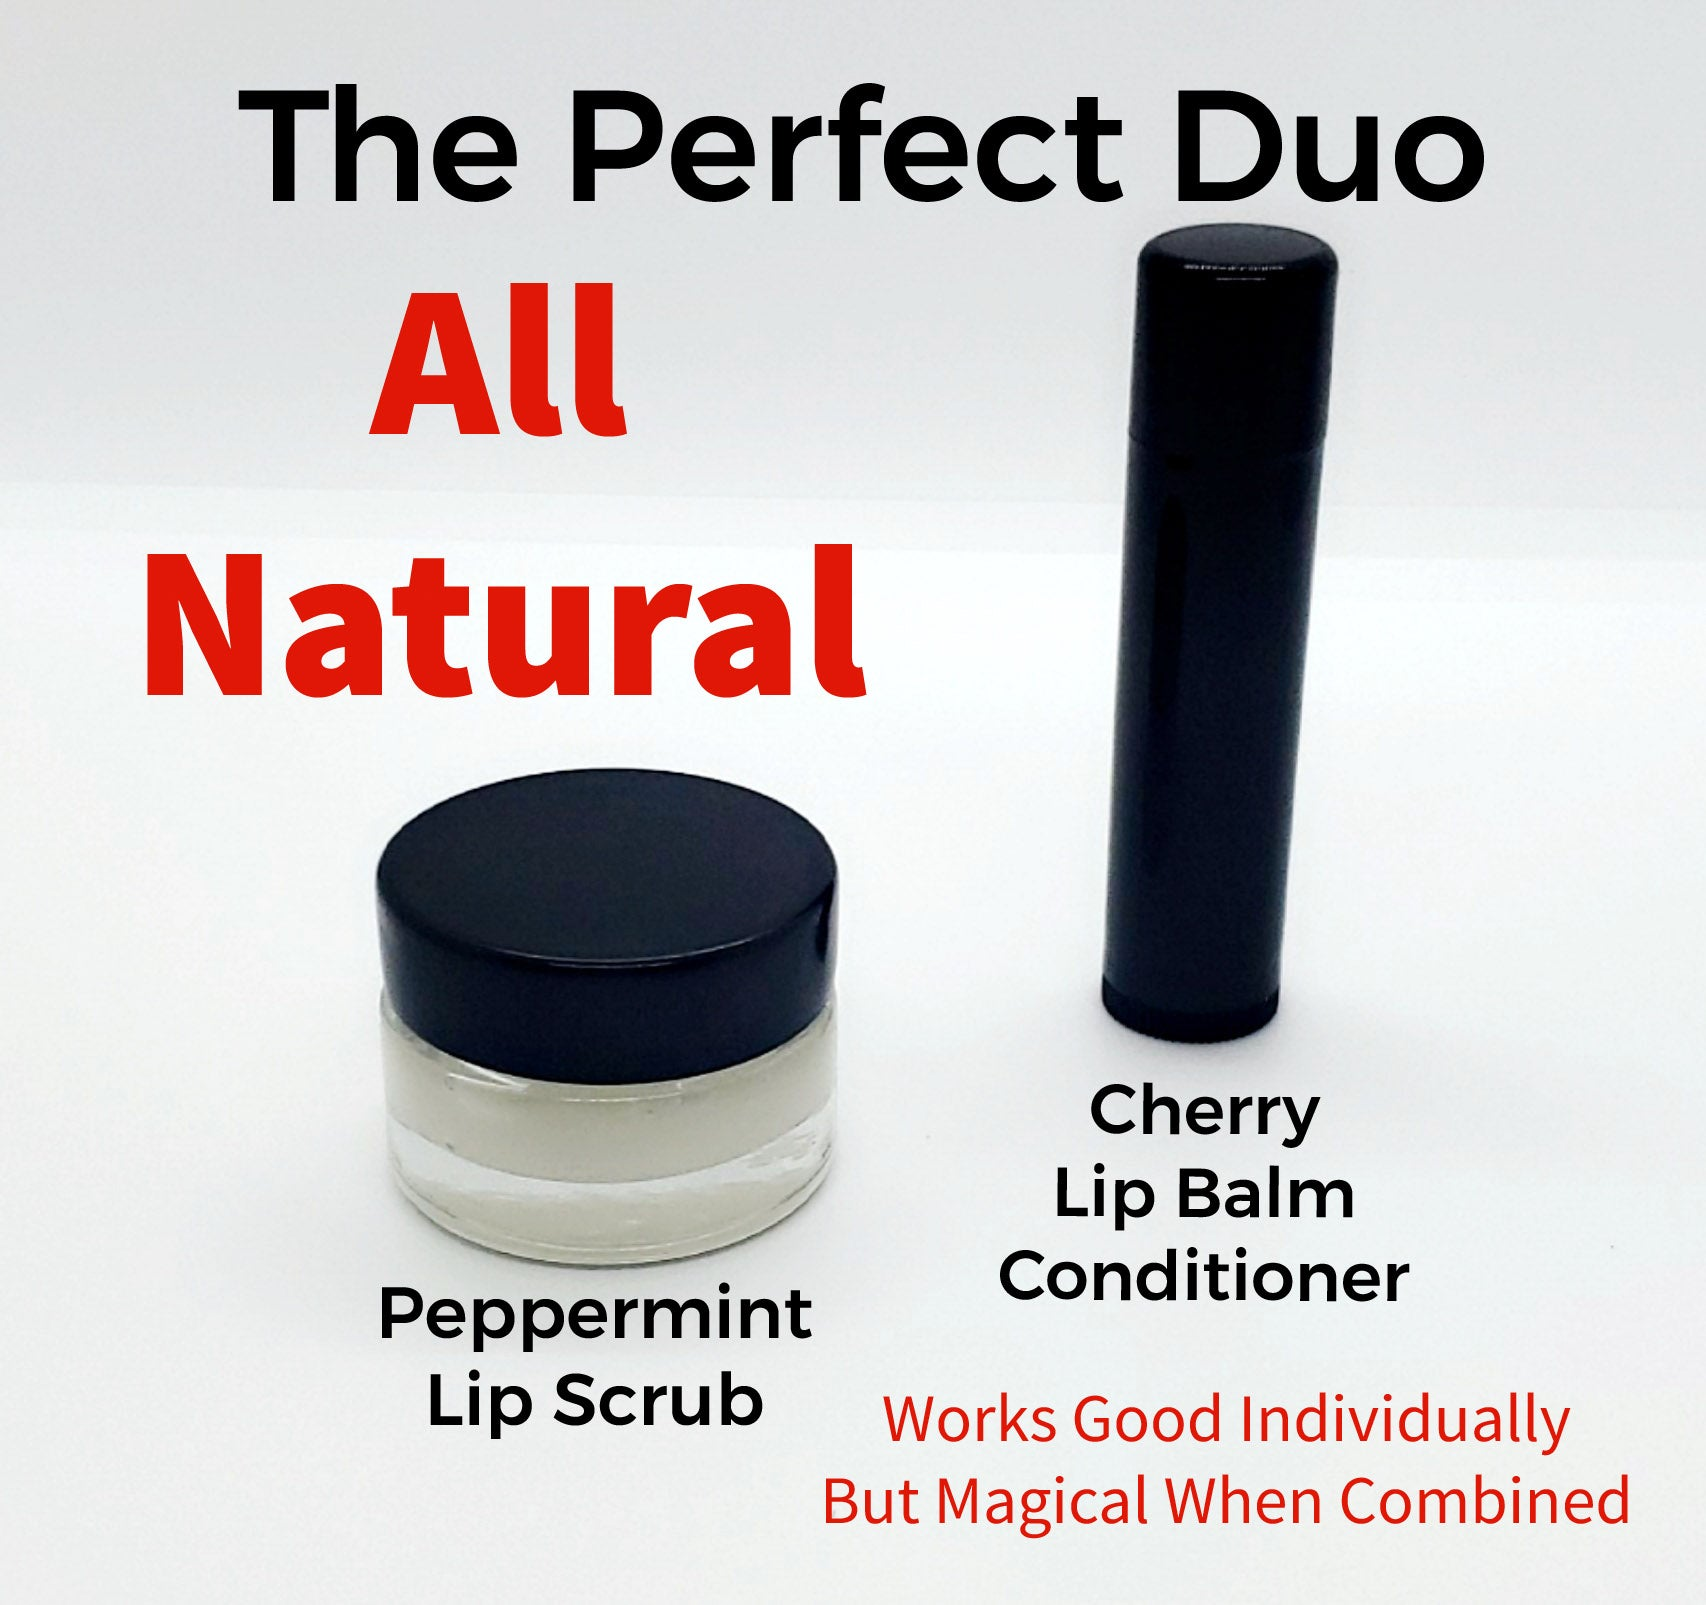 Pair your Peppermint Lip Scrub with the Cherry Lip Balm Conditioner.  This combination is MAGICAL!